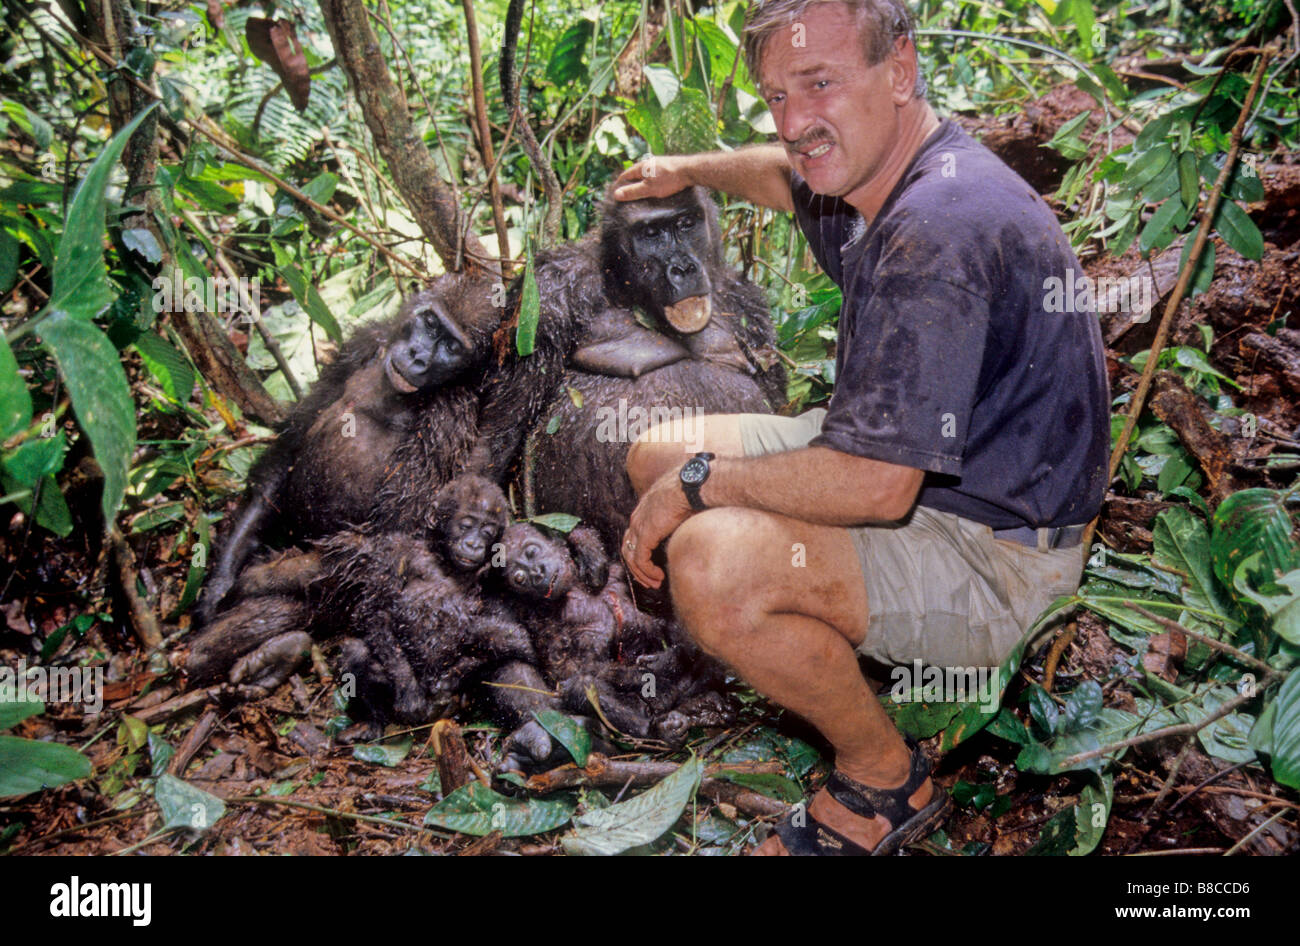 Poached Western Lowland Gorillas - Stock Image